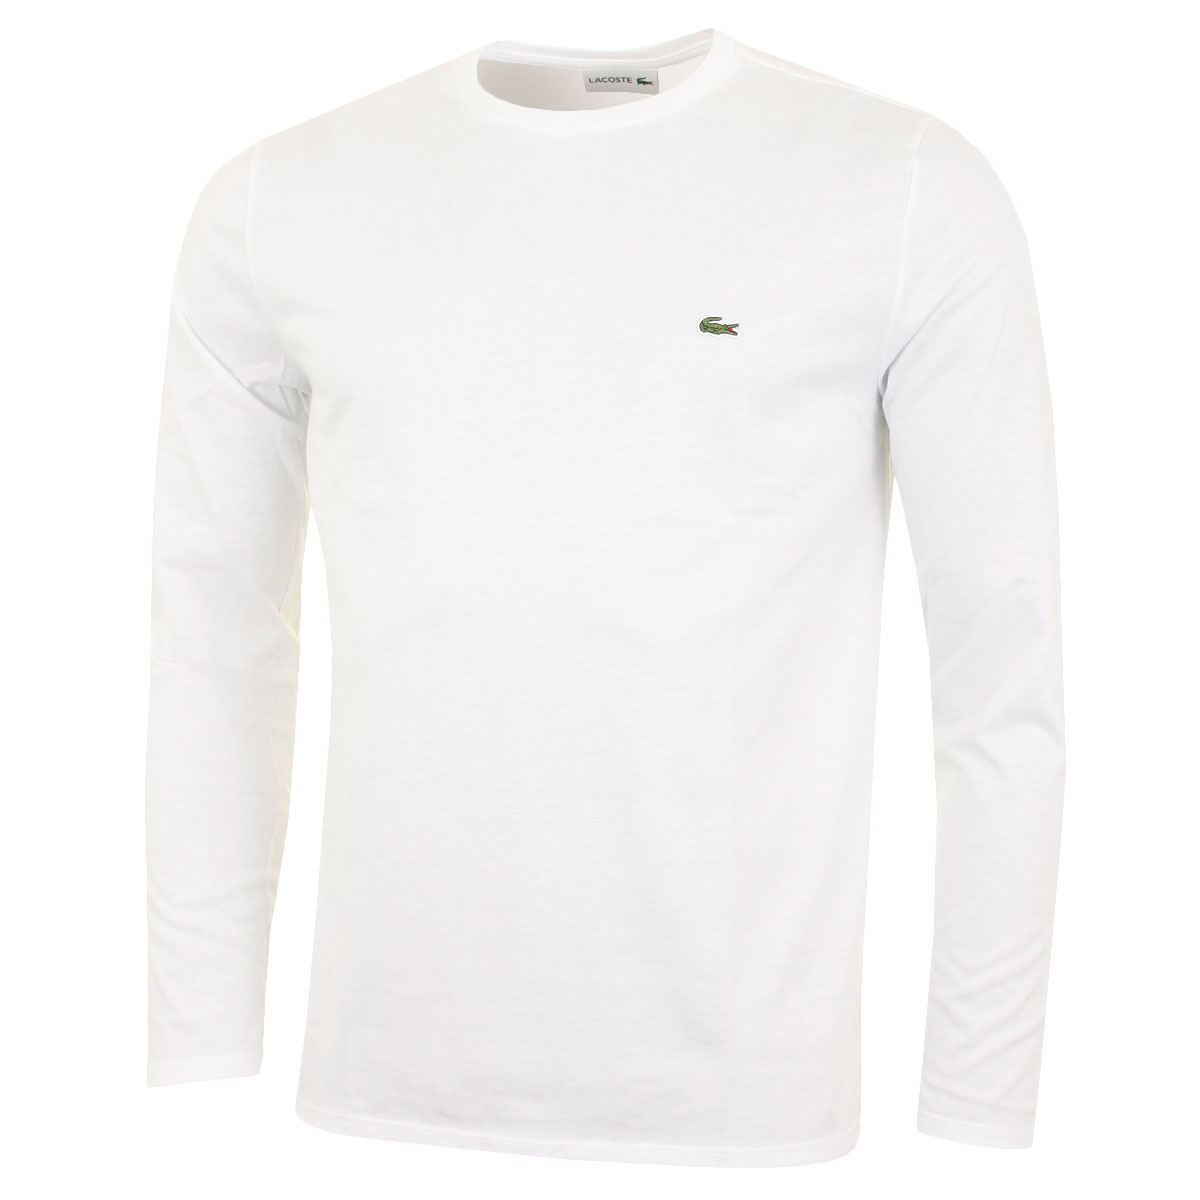 72a88757f7 Details about Lacoste Mens 2019 LS Crew Neck Cotton T Shirt TH6712 Long  Sleeve Tee